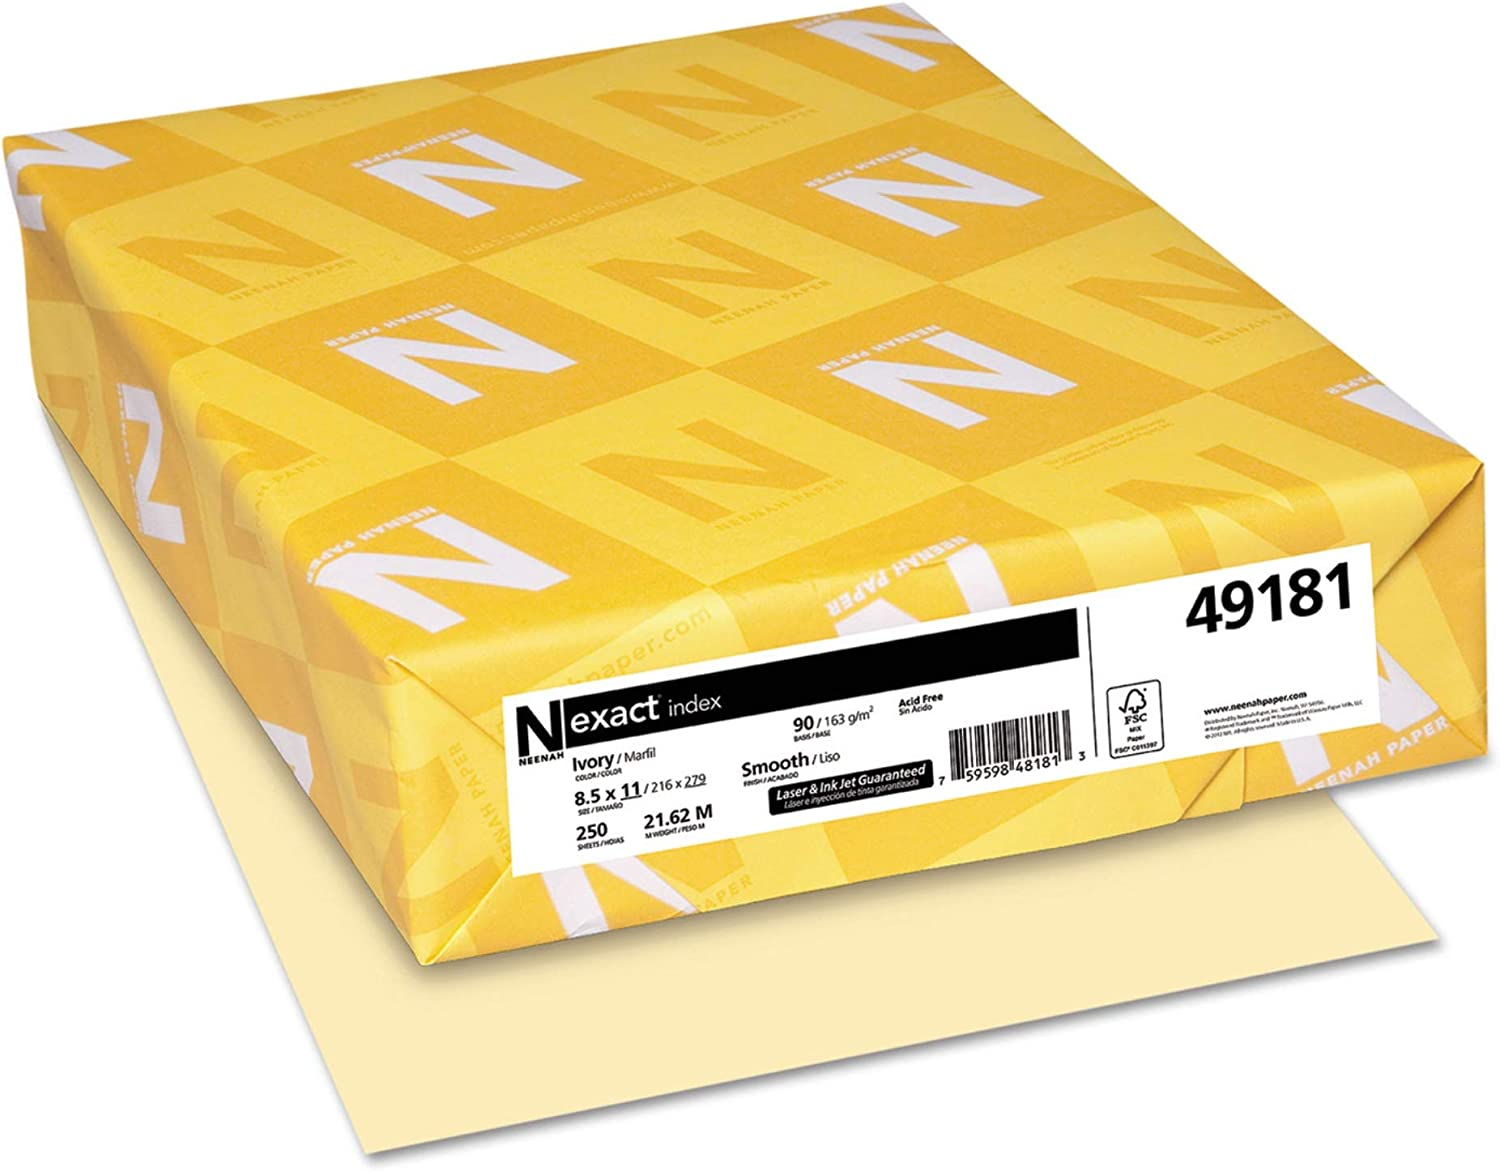 Neenah Paper Exact Index Card Stock 90 x Ivory specialty shop Popular brand in the world 2 lbs 8-1 11